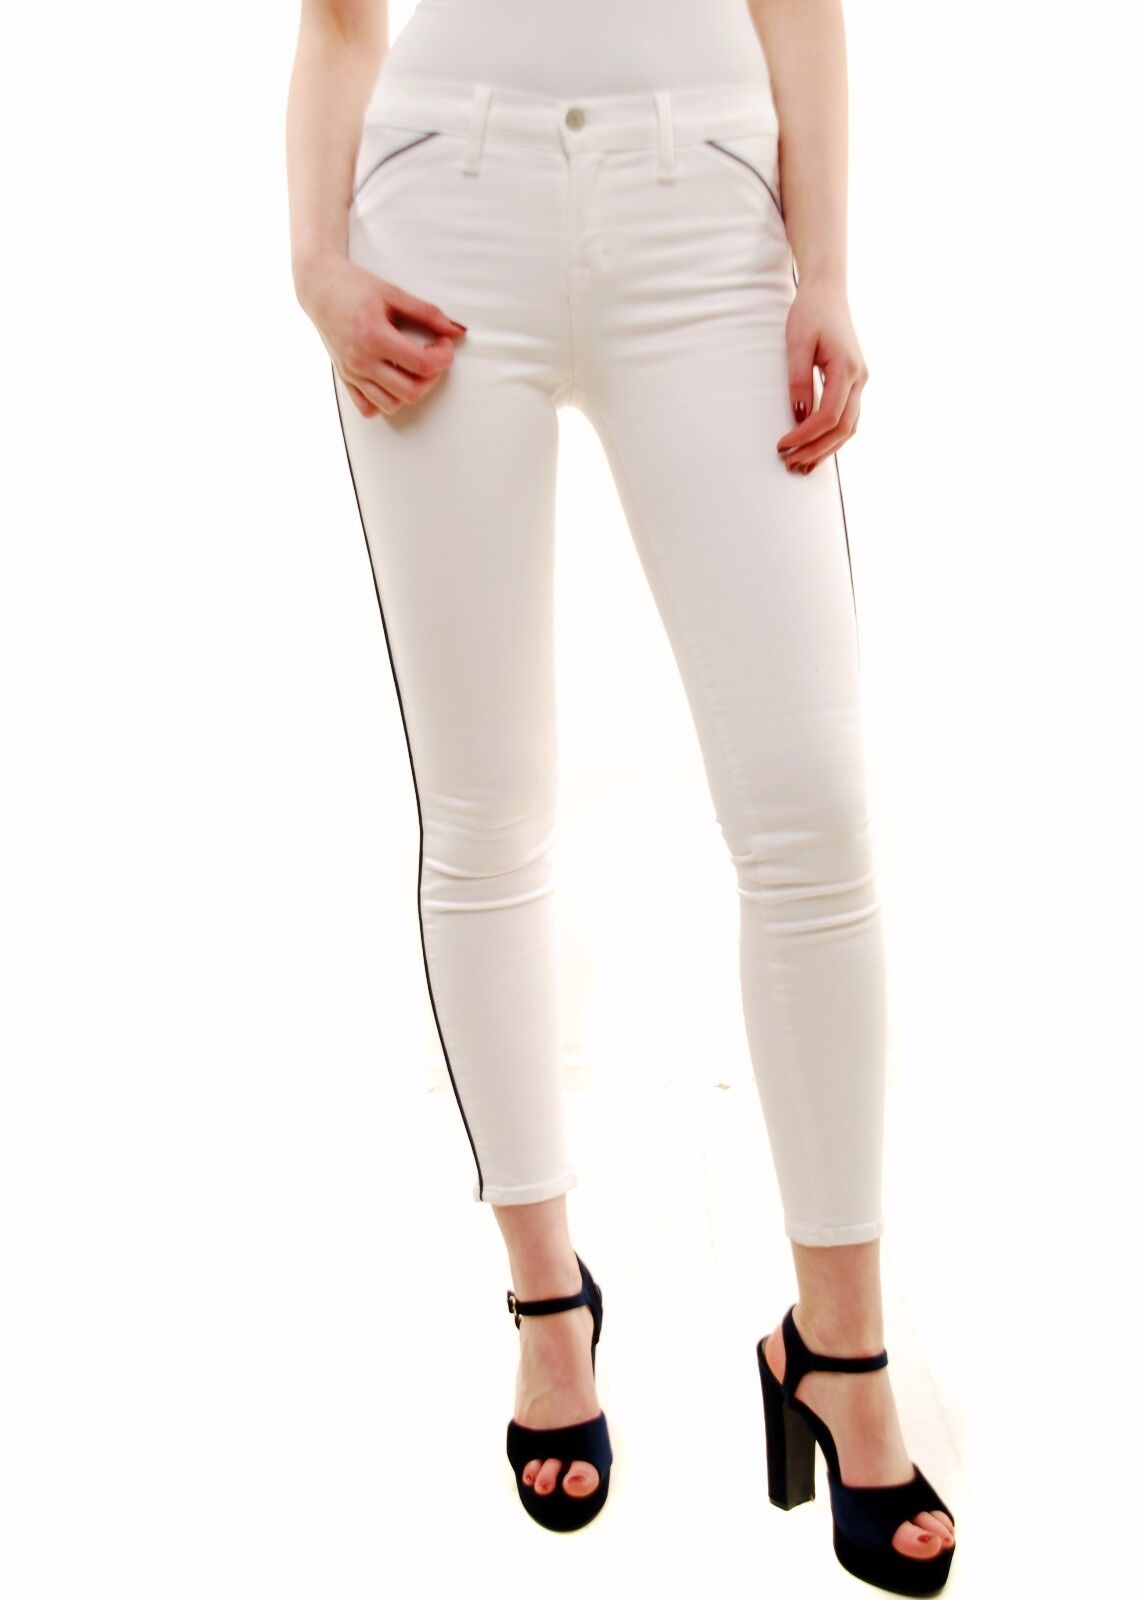 J BRAND Women's New Piped Skinny White Jeans 849C028 Size 30 RRP  BCF72